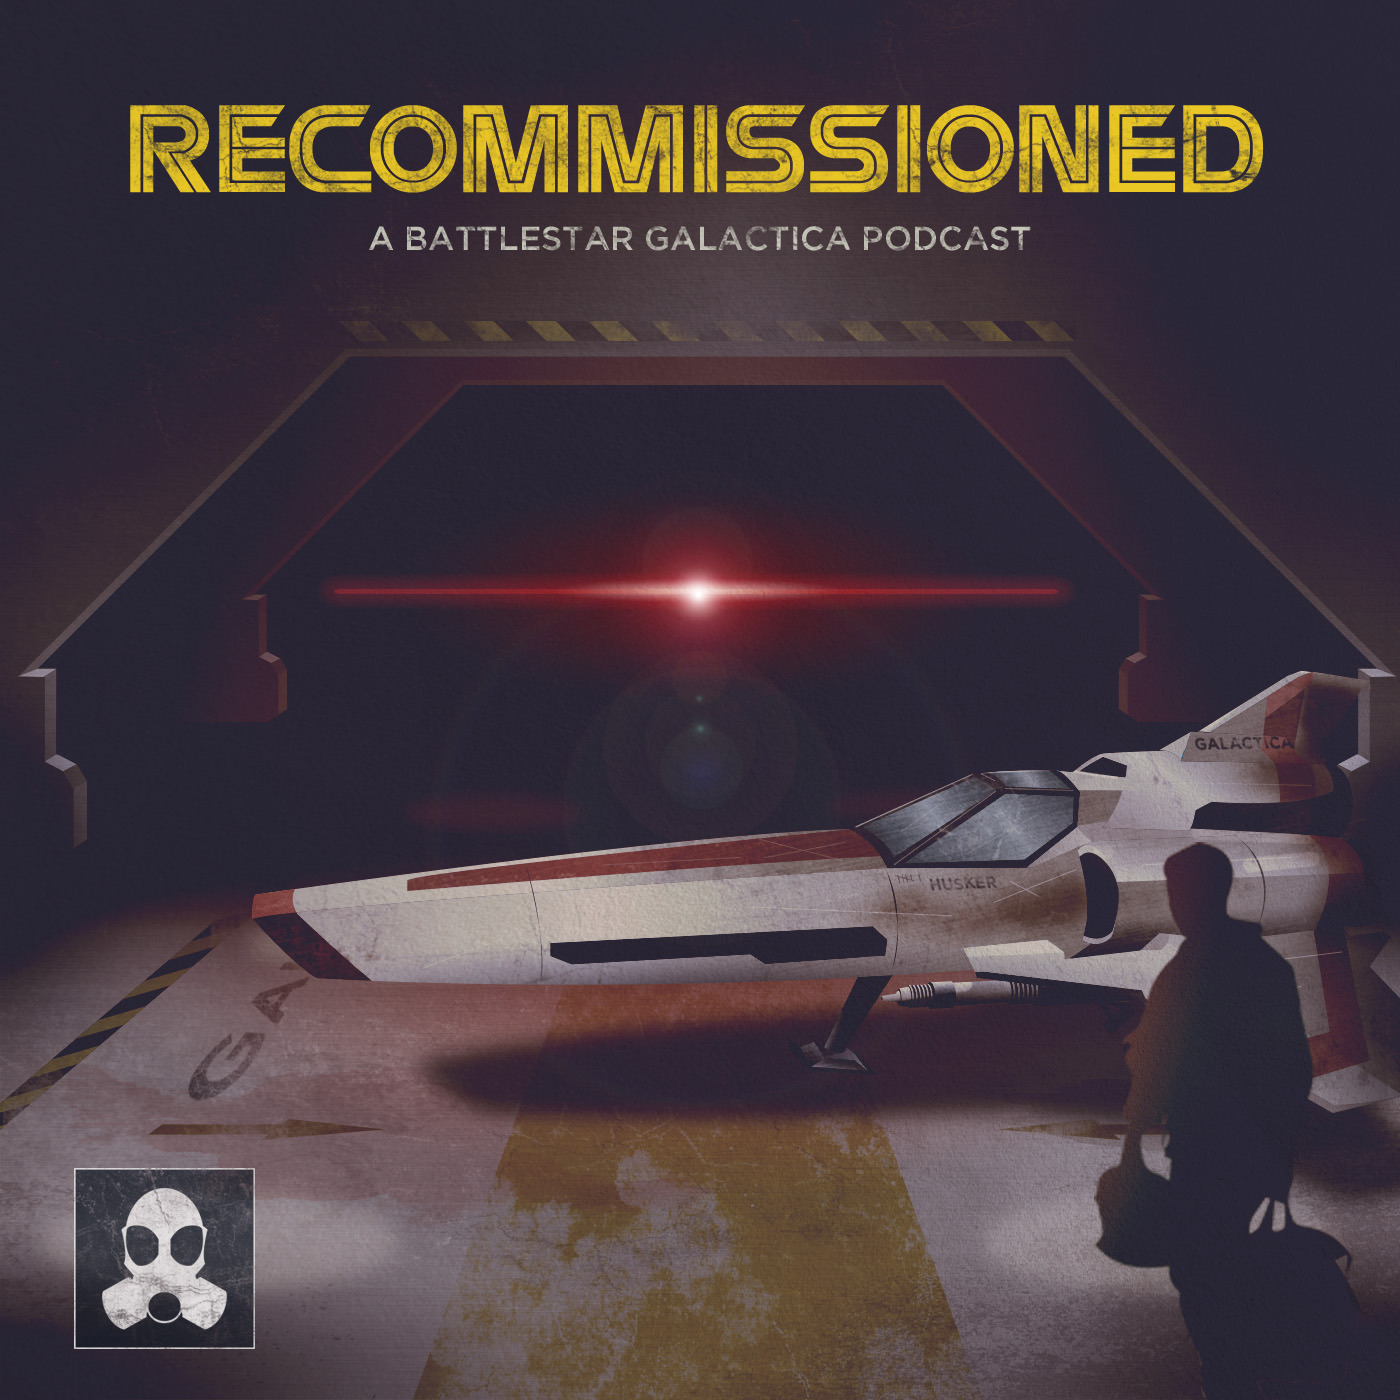 Recommissioned: A Battlestar Galactica Podcast  show art